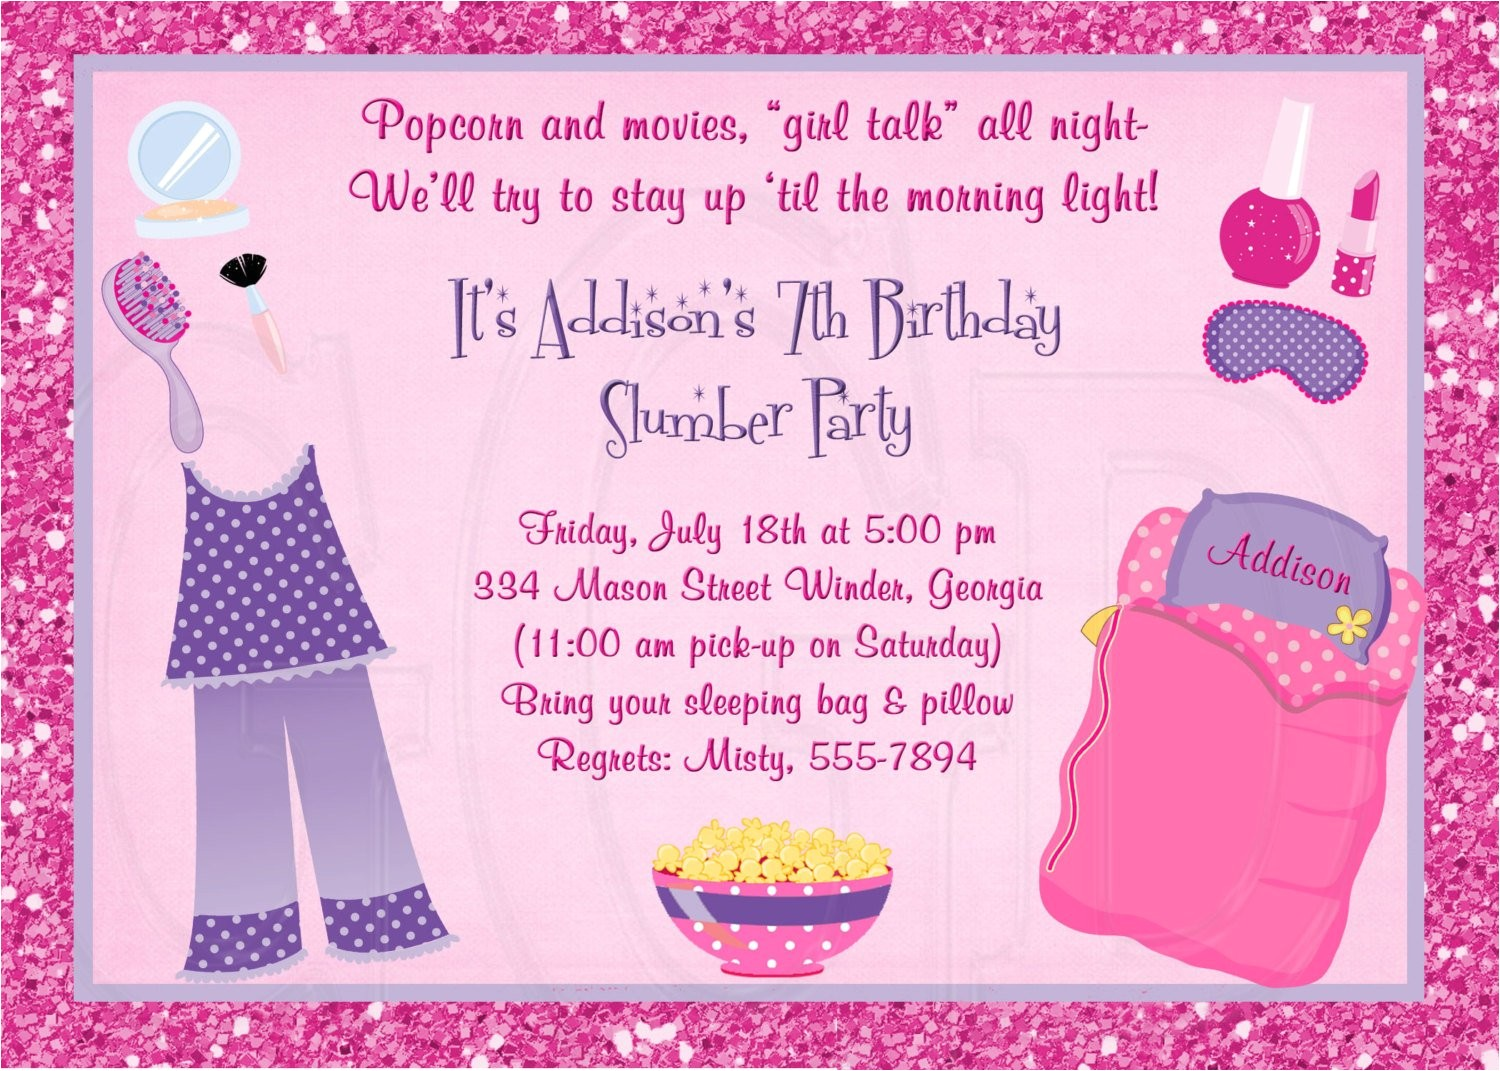 slumber party invitation pajama party